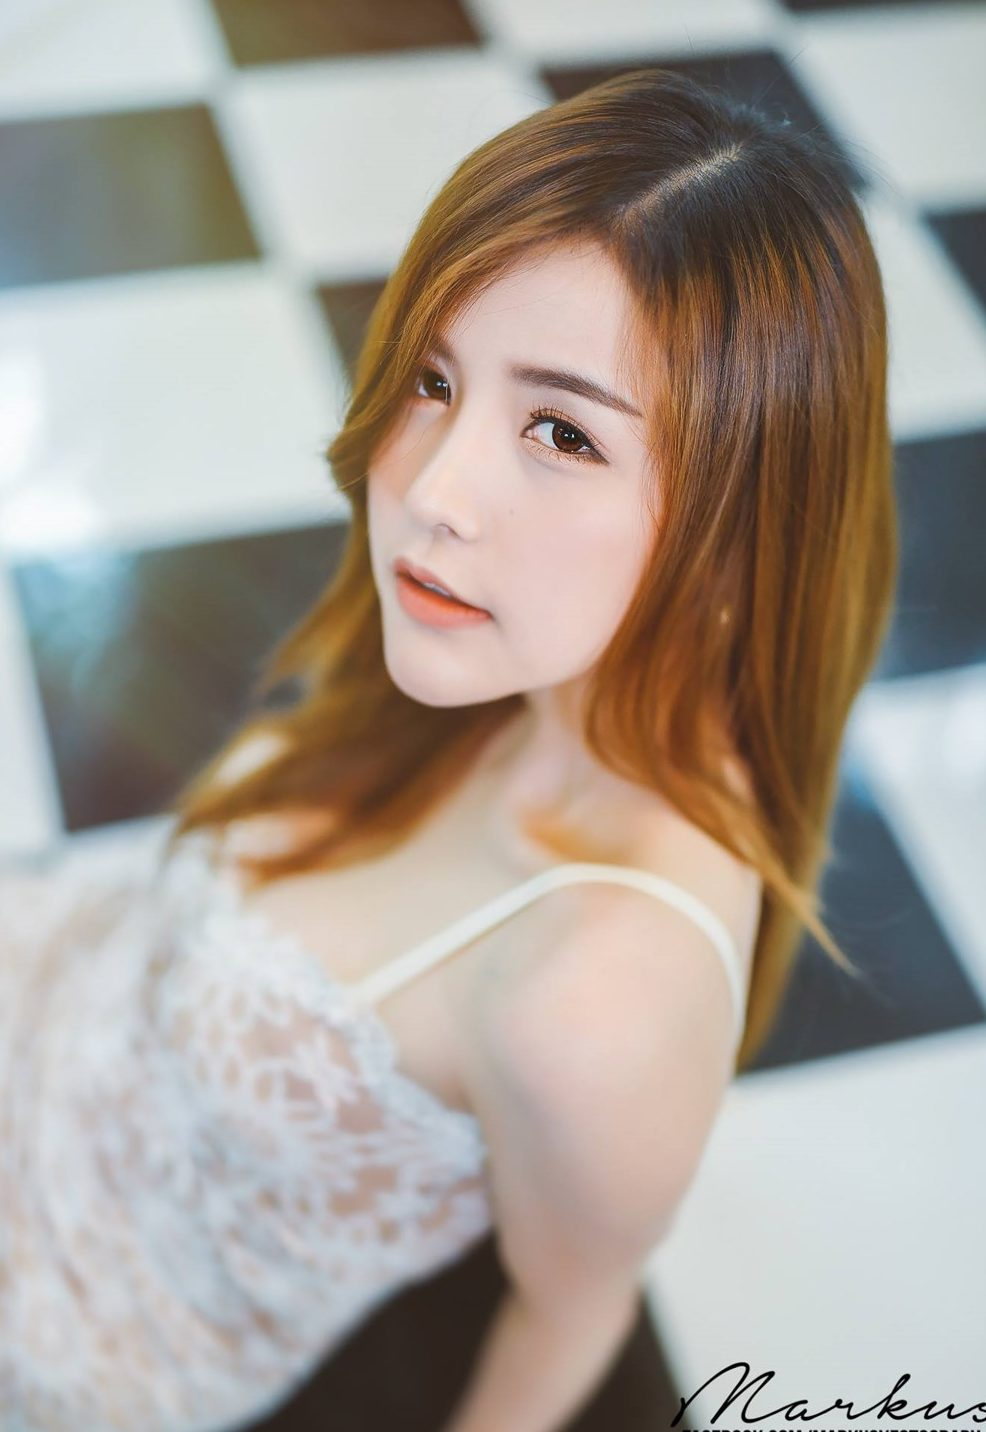 Pimonwan Pansai hot thai girl sexy asian girl